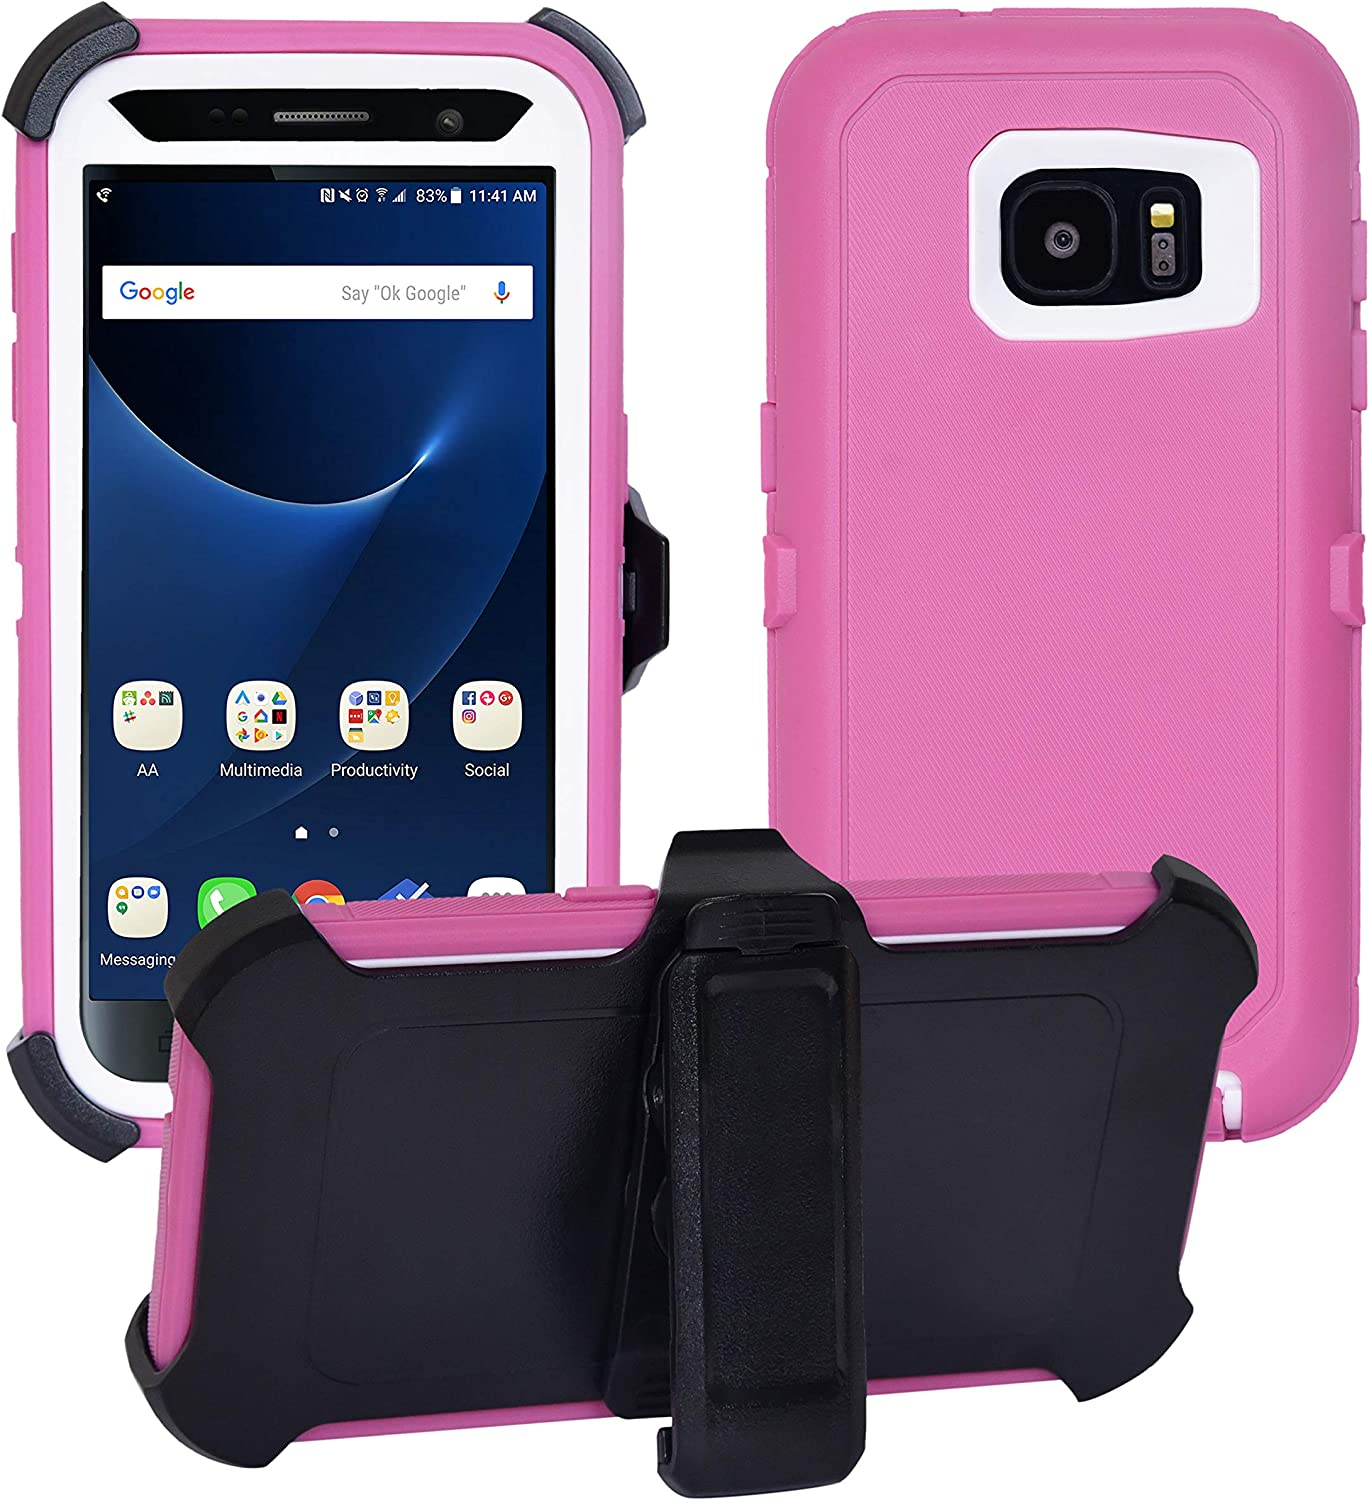 Samsung Galaxy S7 Cover | 2-in-1 Screen Protector & Holster Case | Full Body Military Grade Edge-to-Edge Protection with carrying belt clip| Drop Proof Shockproof Dustproof | Pink / White